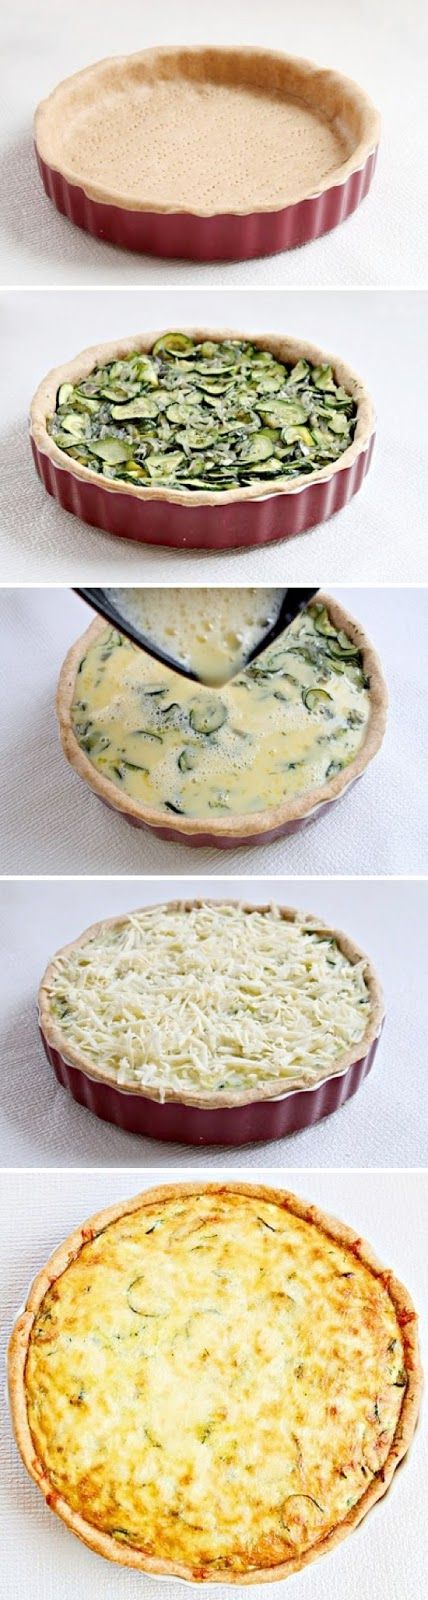 Zucchini Quiche Recipe Ingredients 1 cup whole wheat flour 1 cup all-purpose flour 4 oz butter 3 zucchini (~ 21-22 oz) 2 red onions olive oil a handful fresh dill 1 1/4 cup milk 3 eggs 2-3 o…